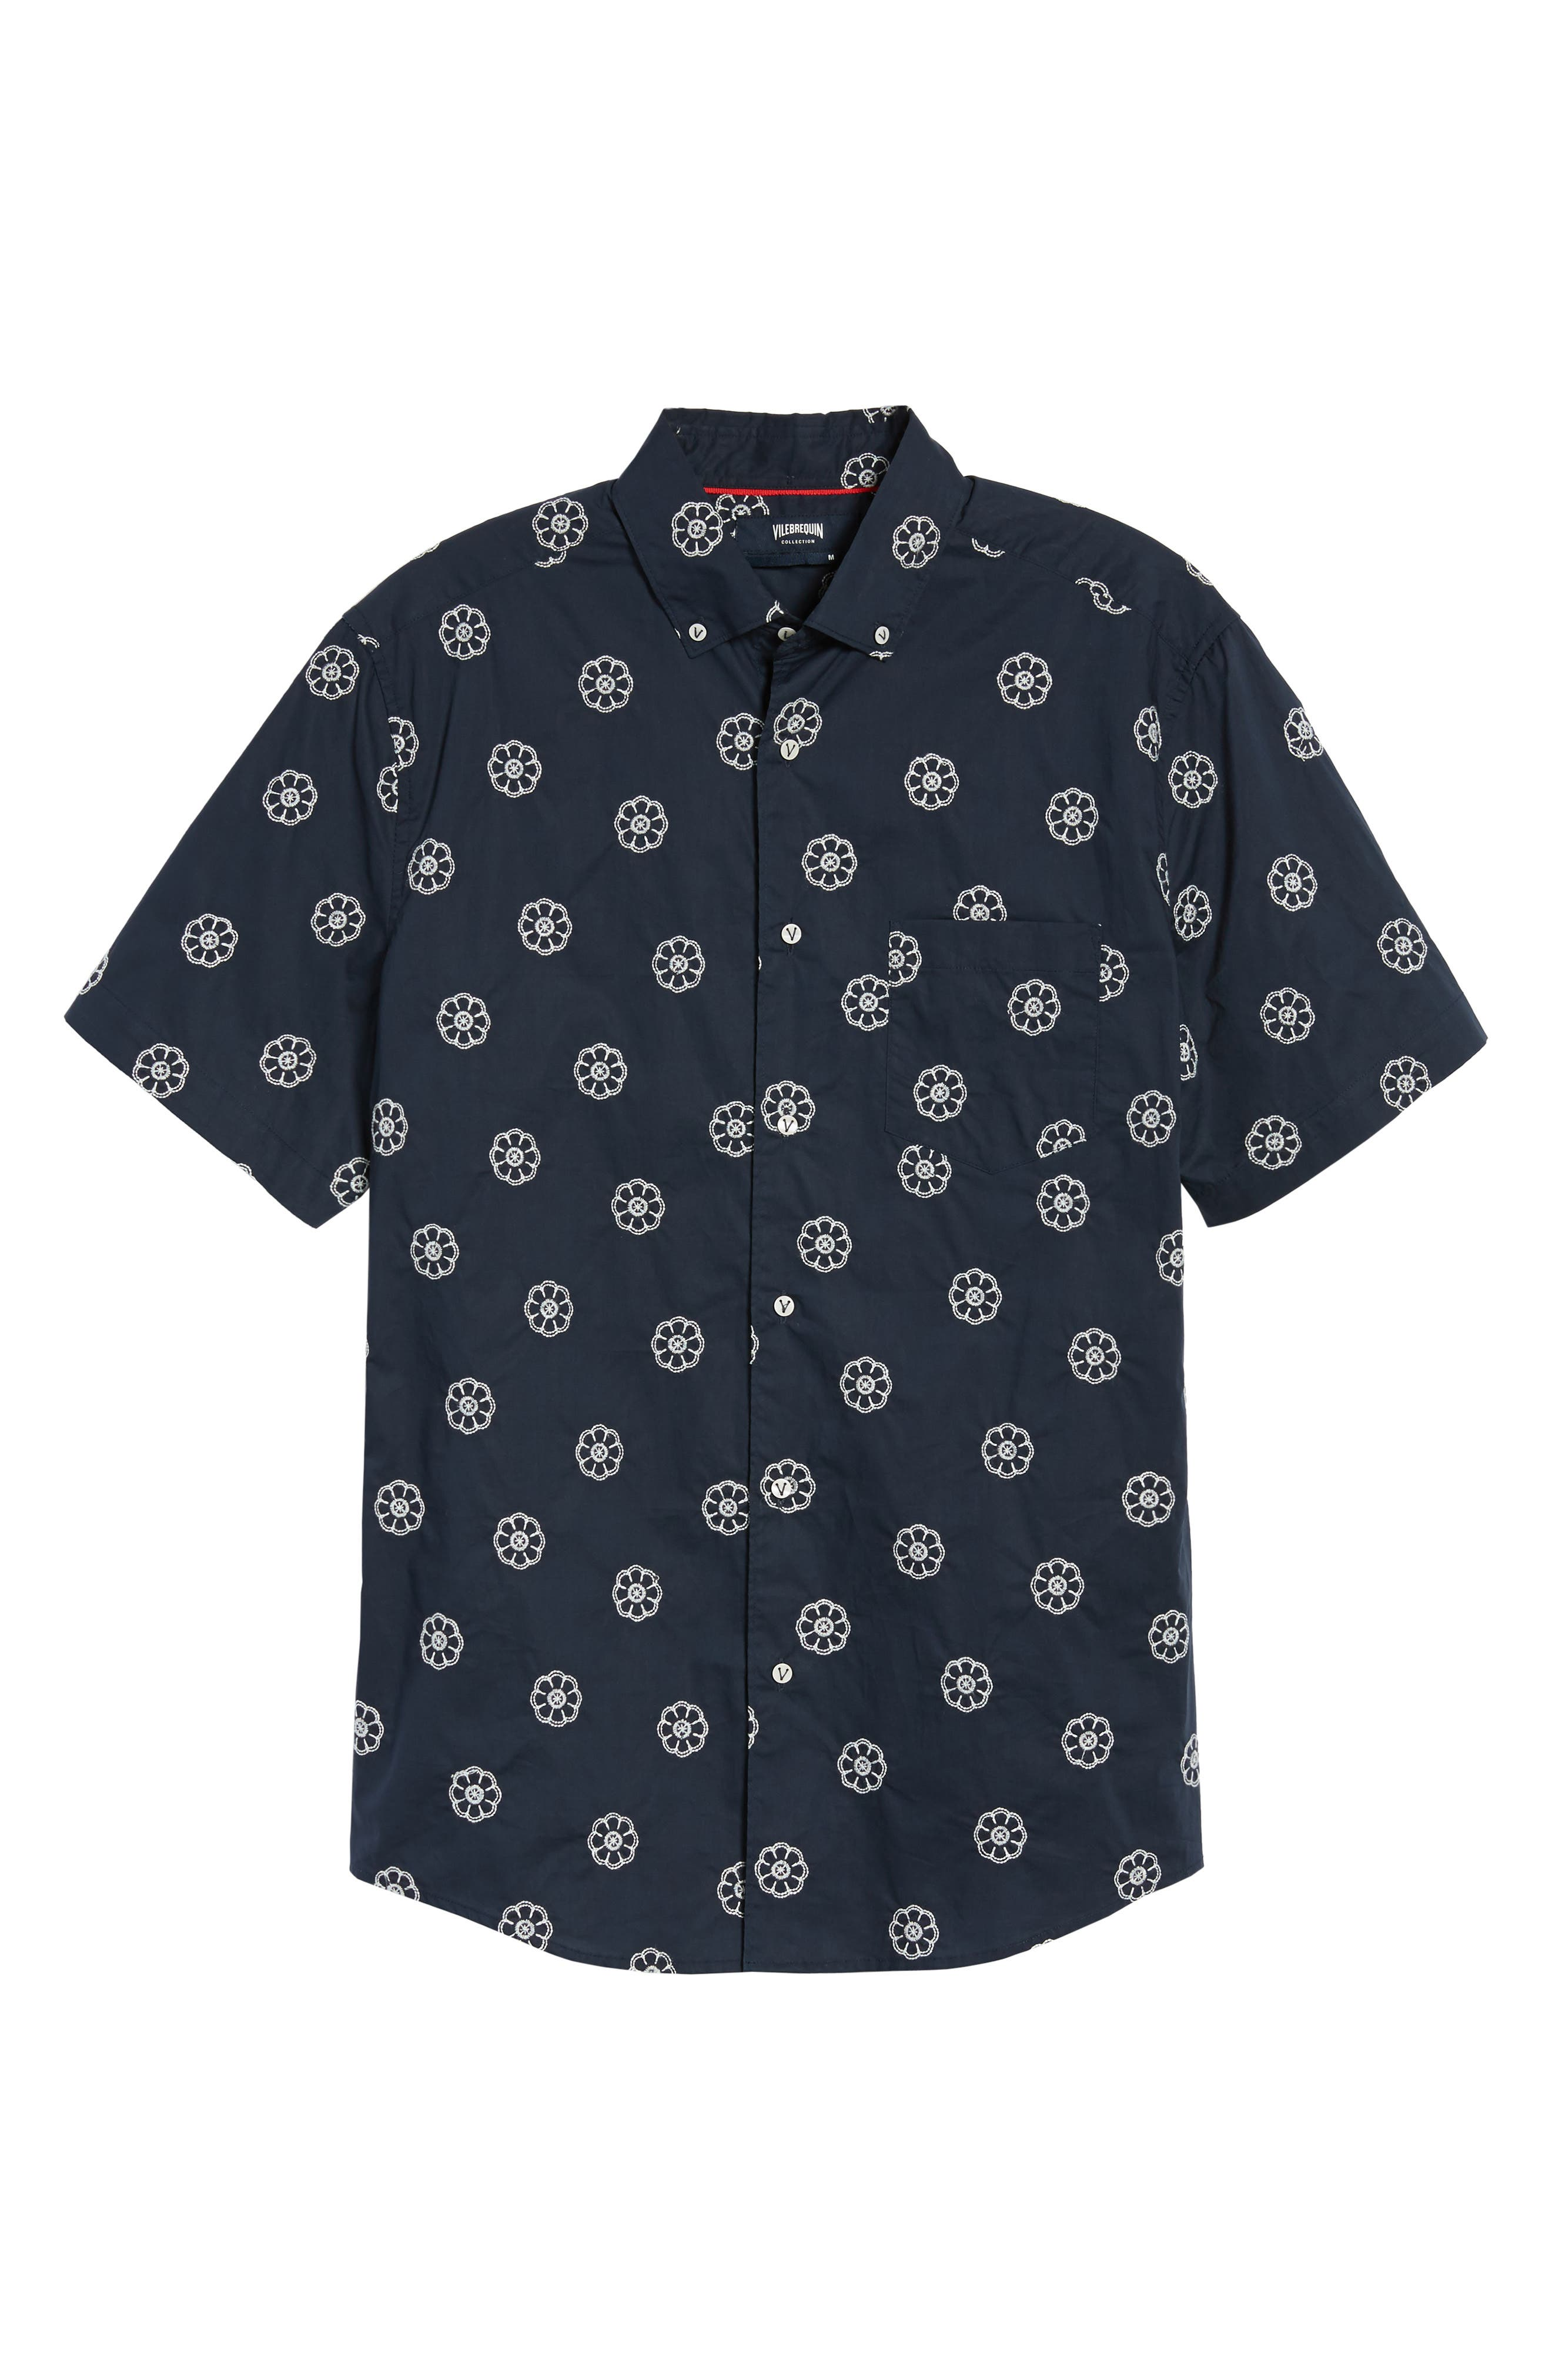 Embroidered Floral Poplin Shirt,                             Alternate thumbnail 6, color,                             402